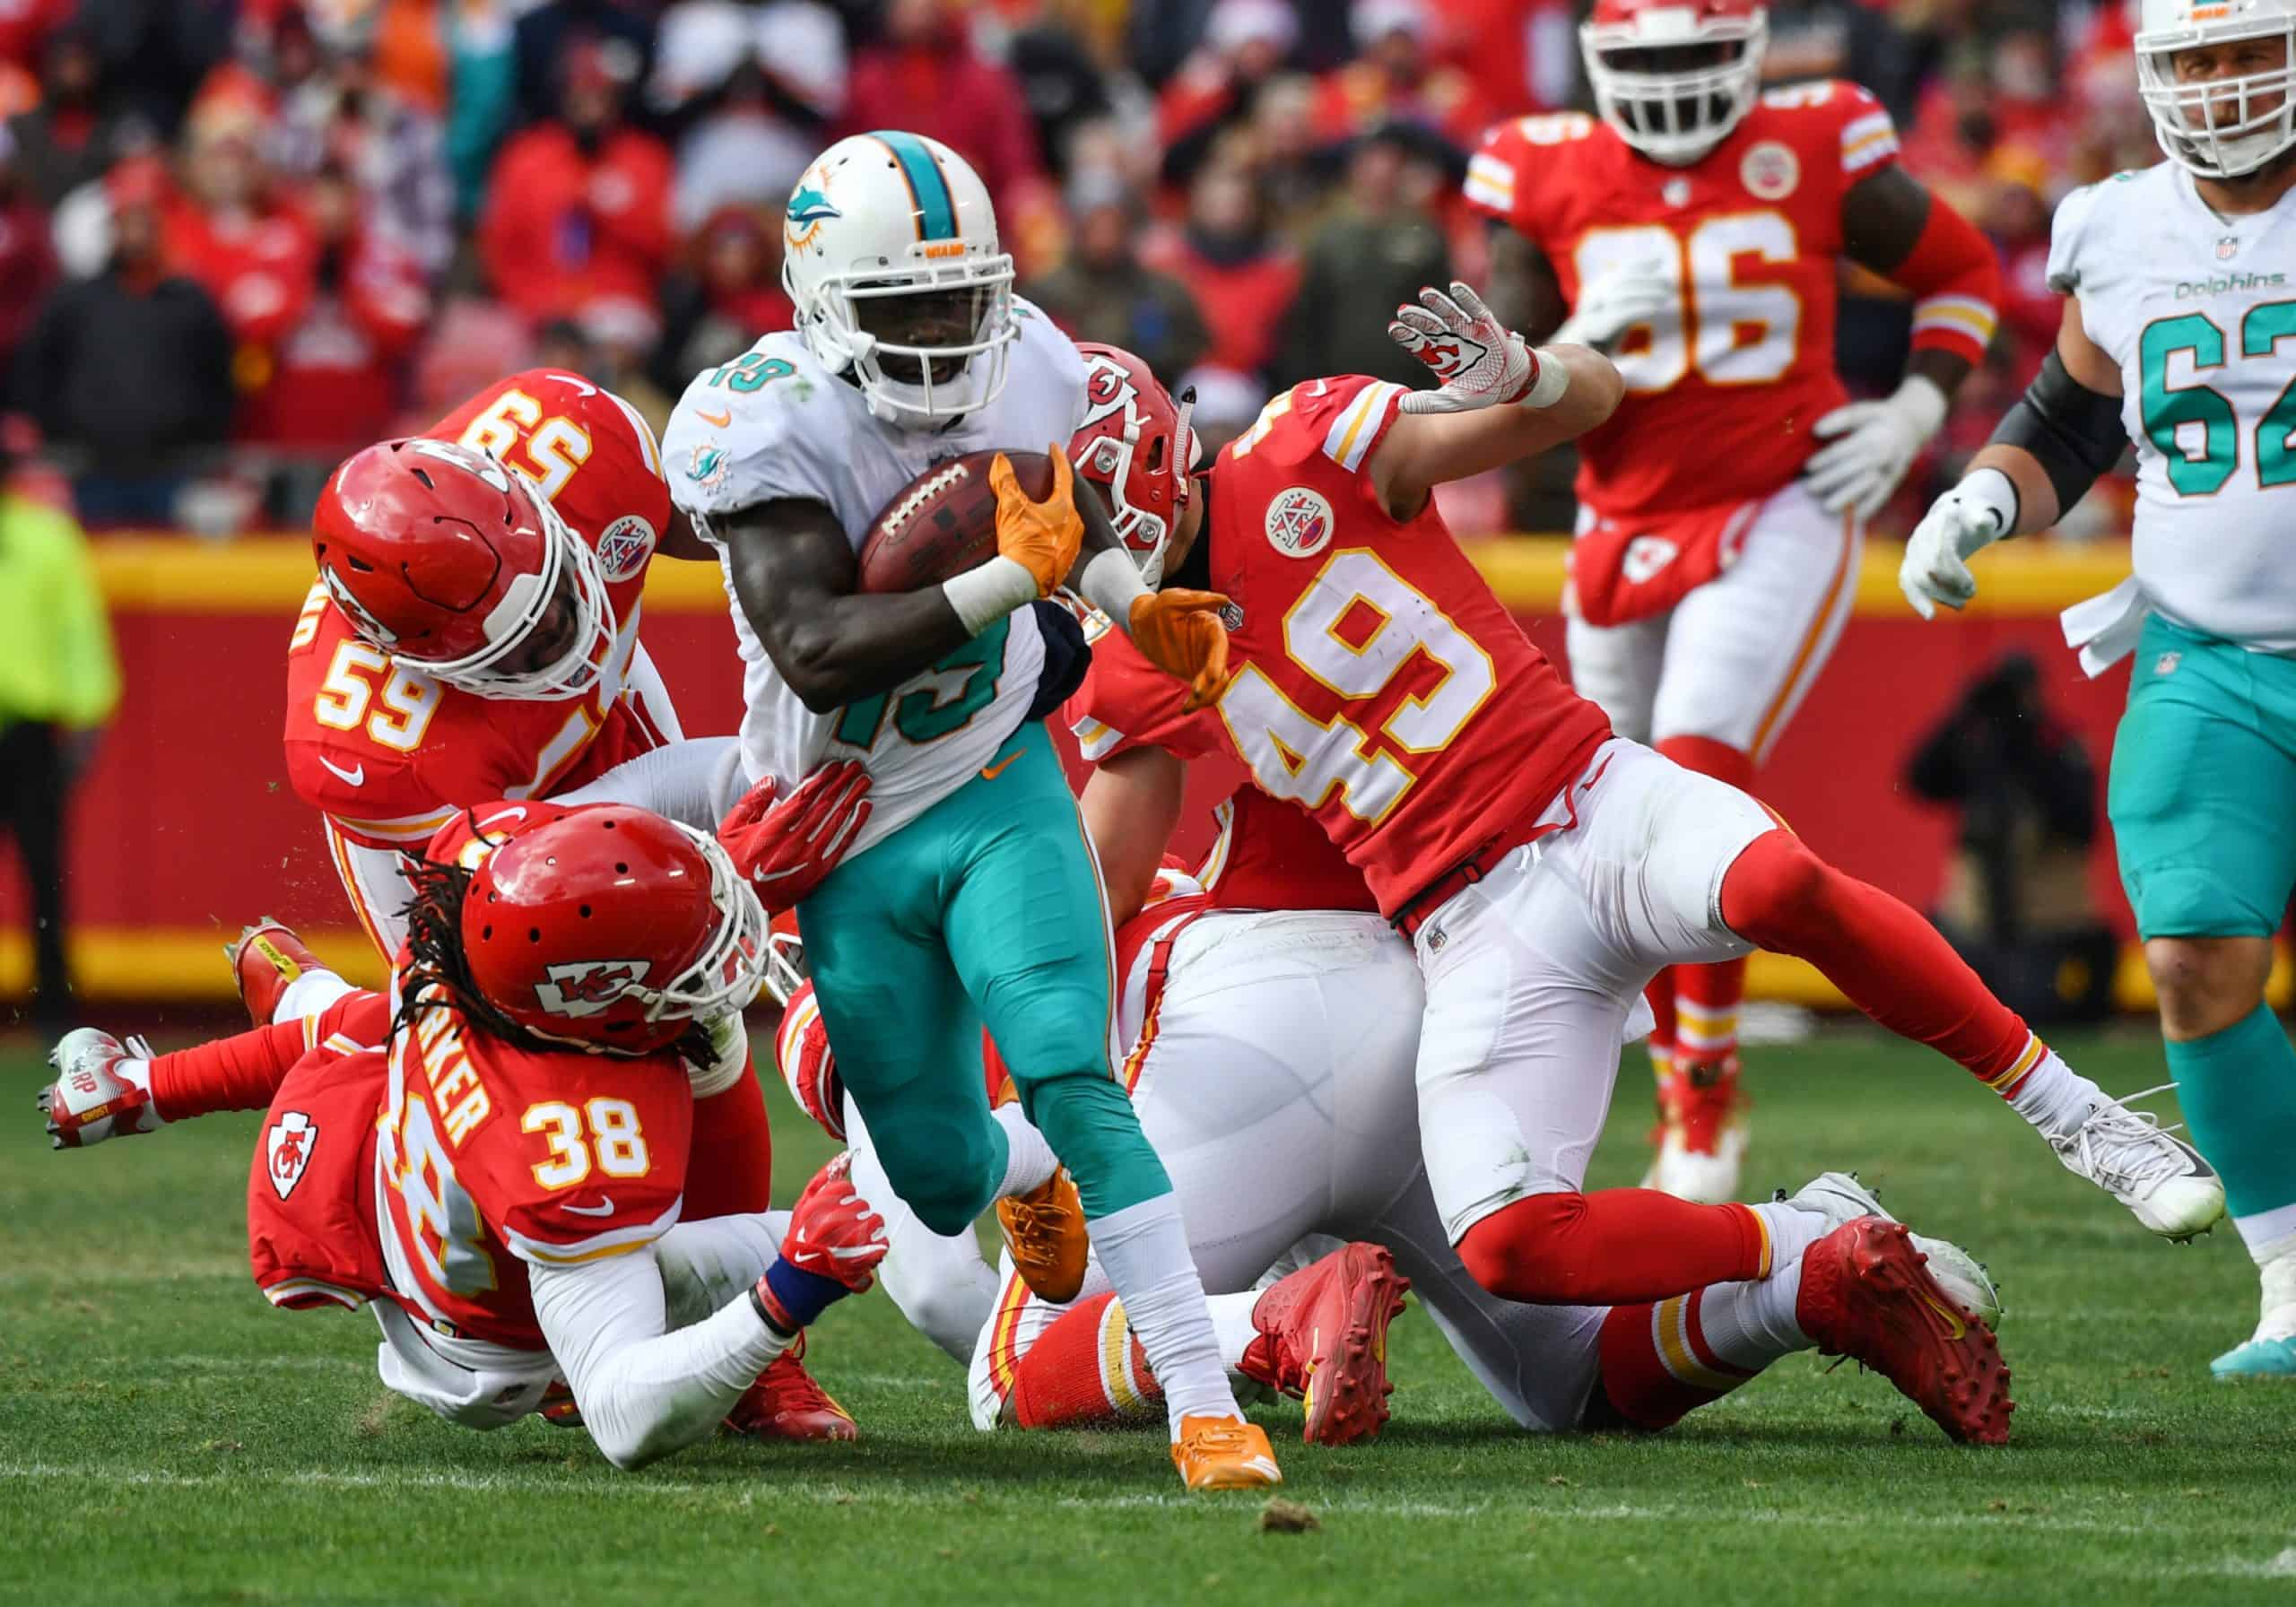 Dolphins Mailbag: What are strongest & weakest positional groups in 2020?